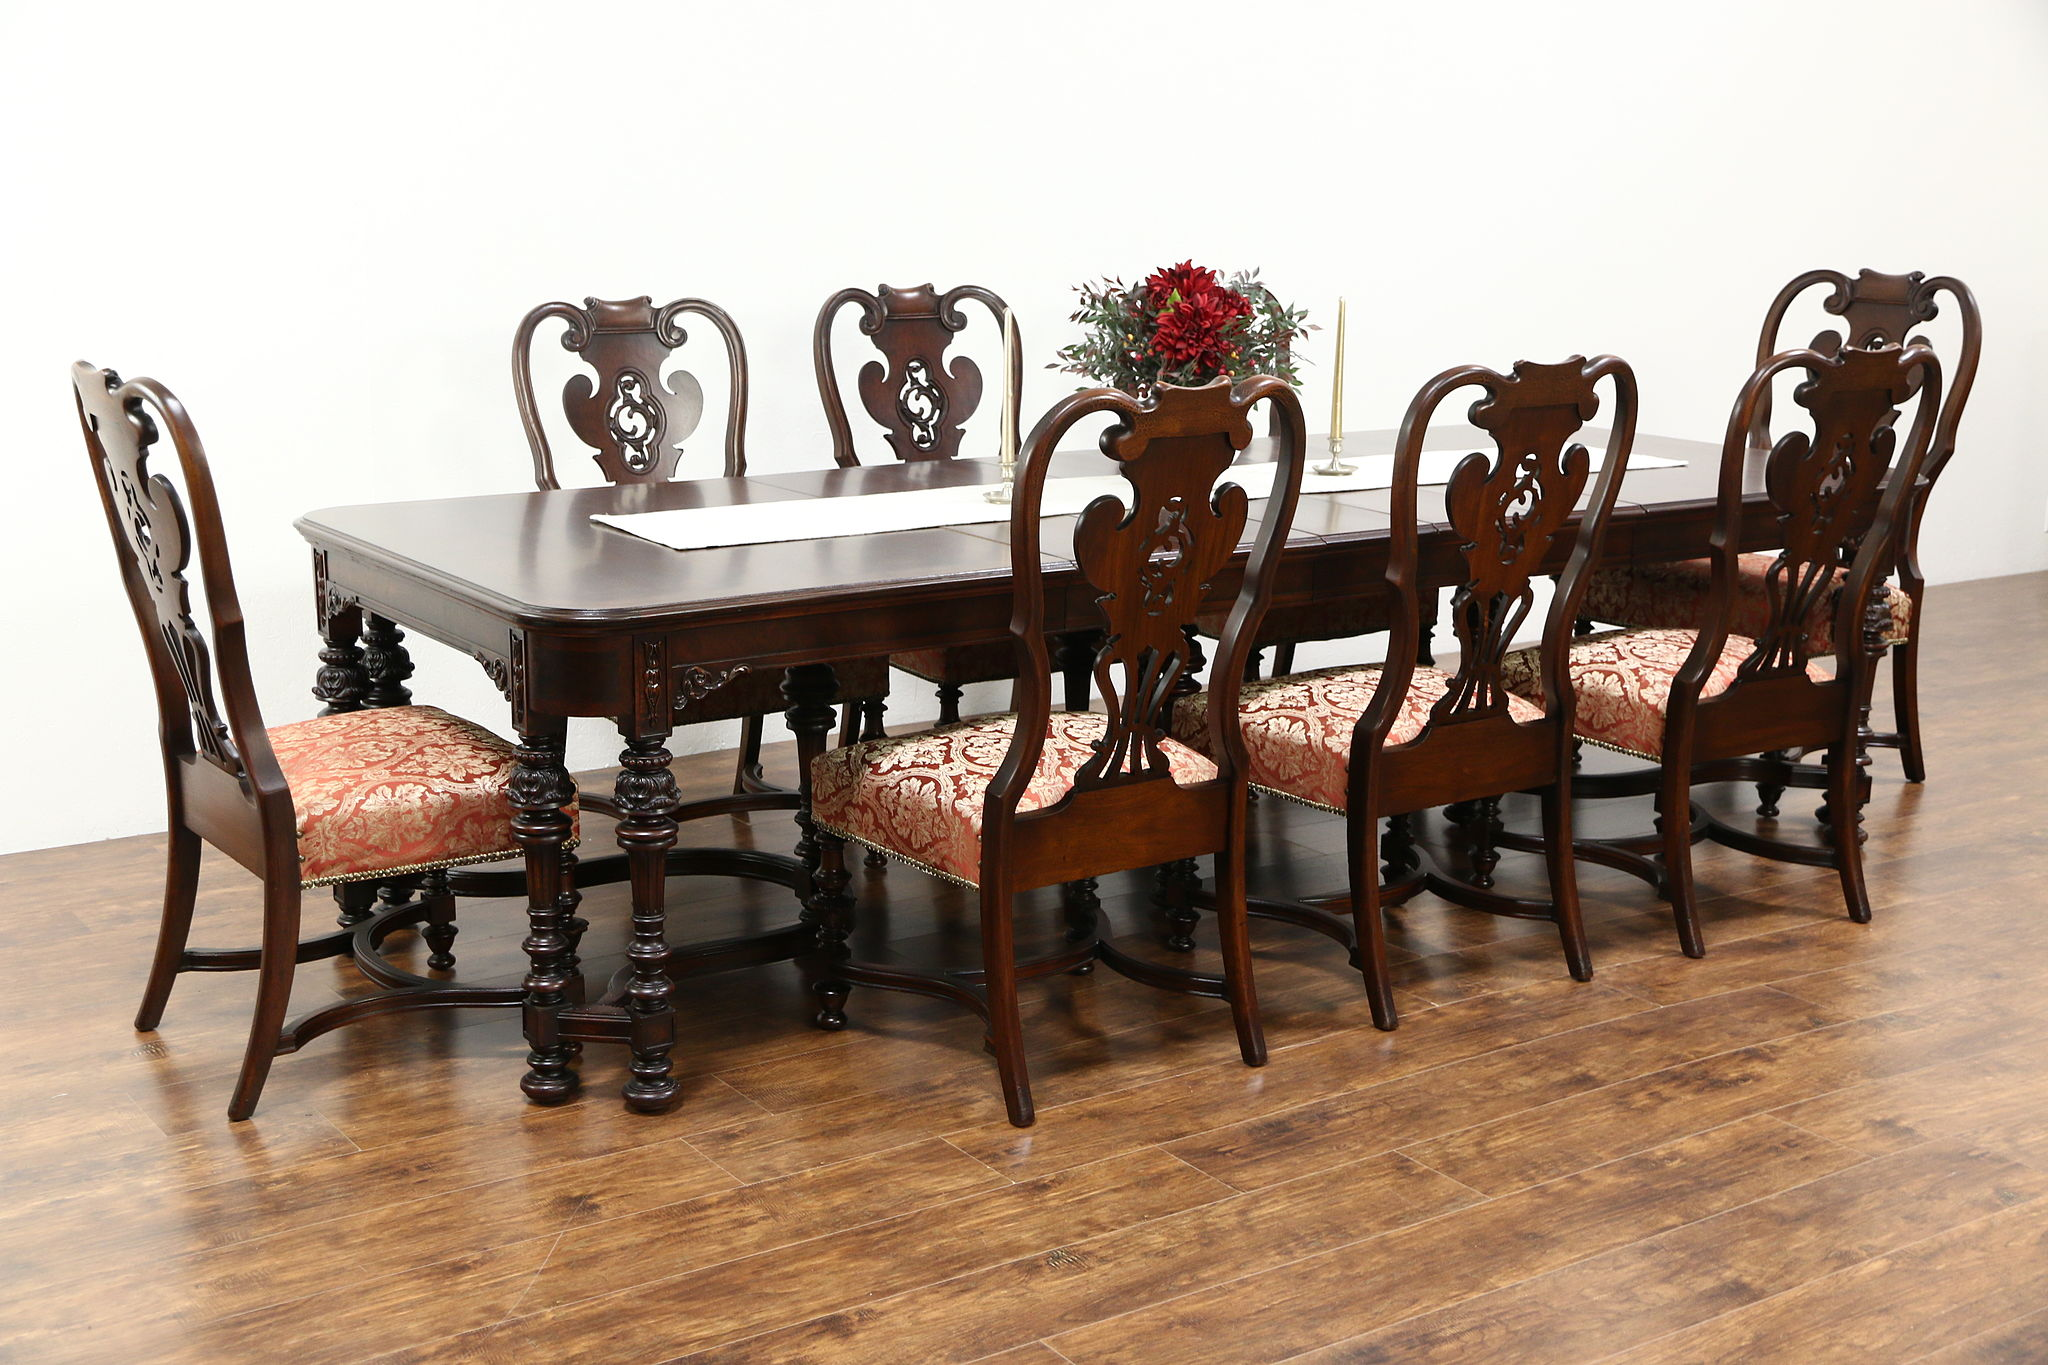 1915 Antique Dining Set, Antique Dining Room Table